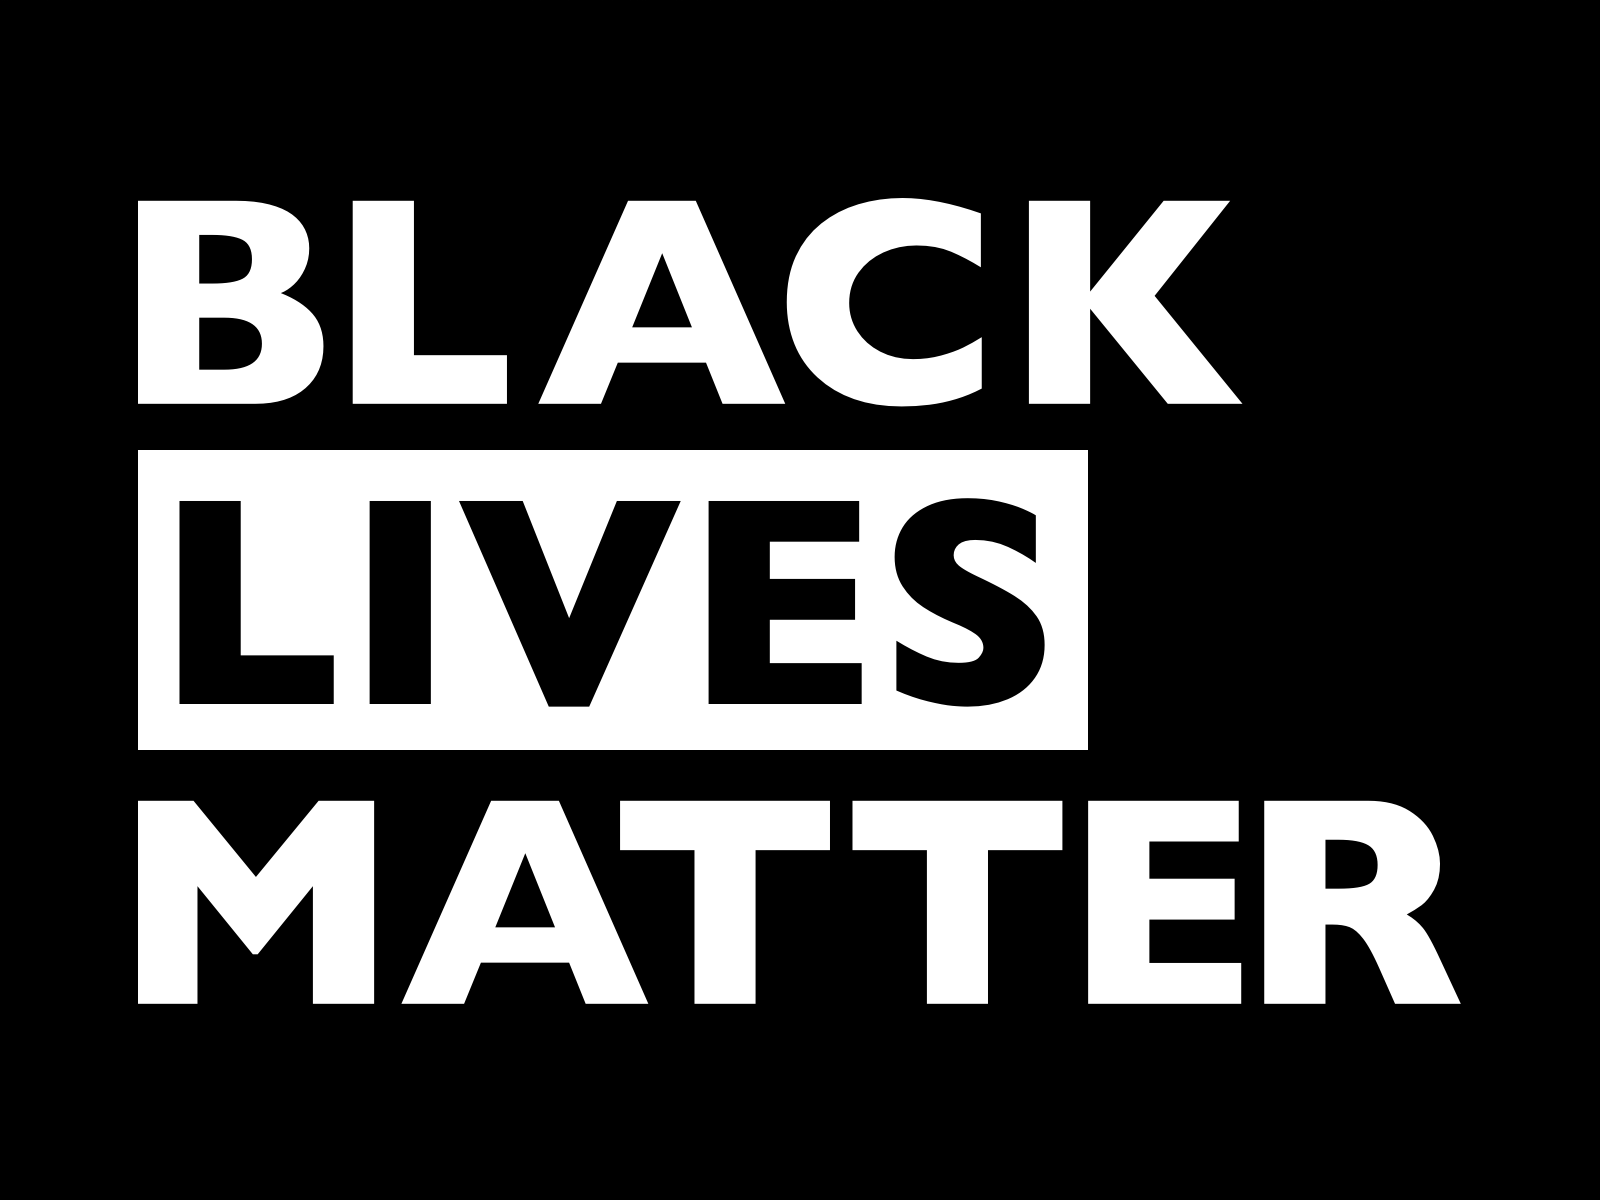 An image showing the words Black Lives Matter